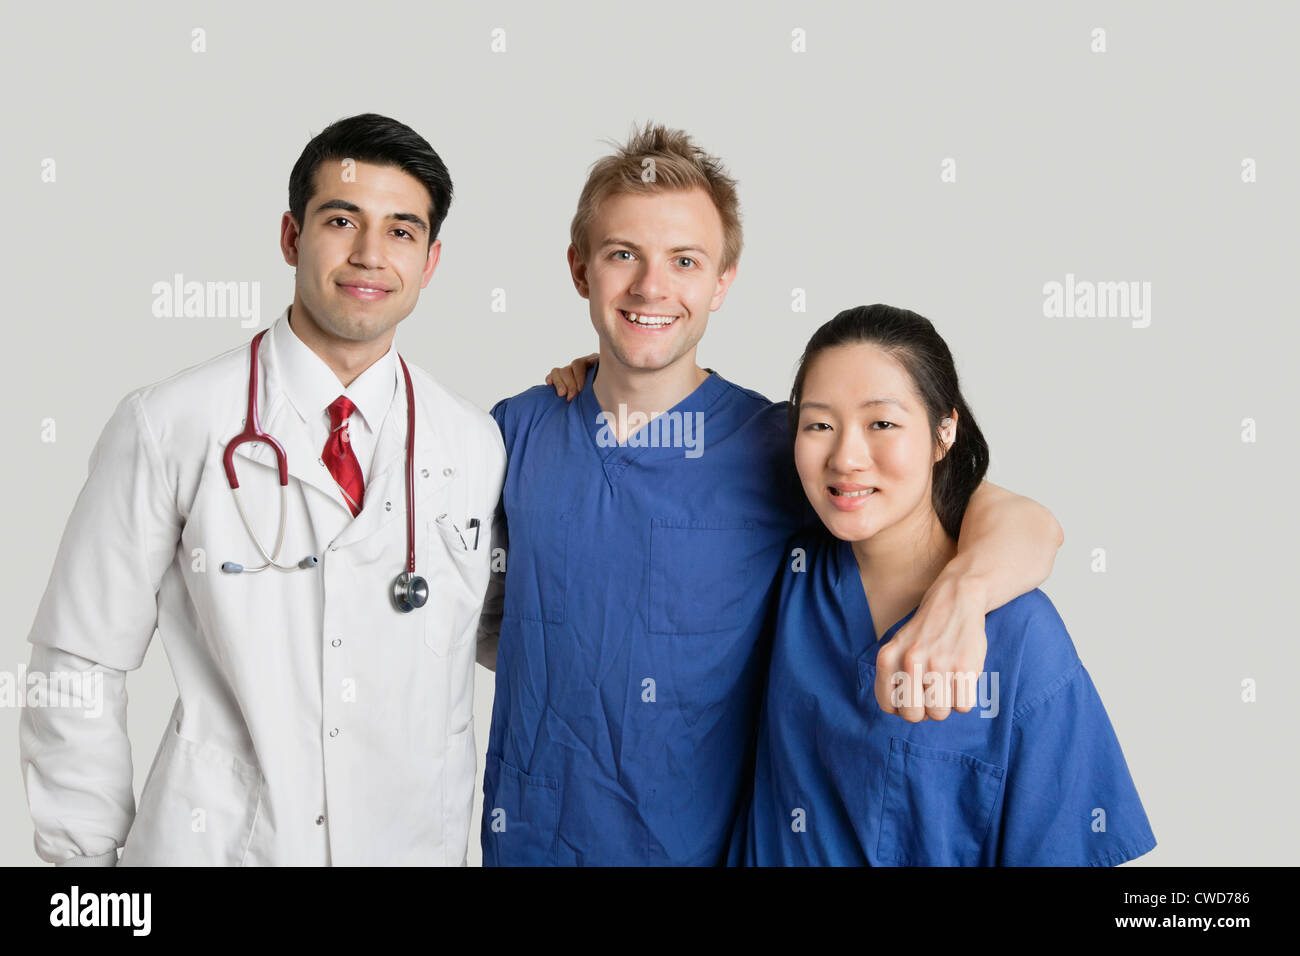 Portrait of friendly medical team standing over gray background - Stock Image